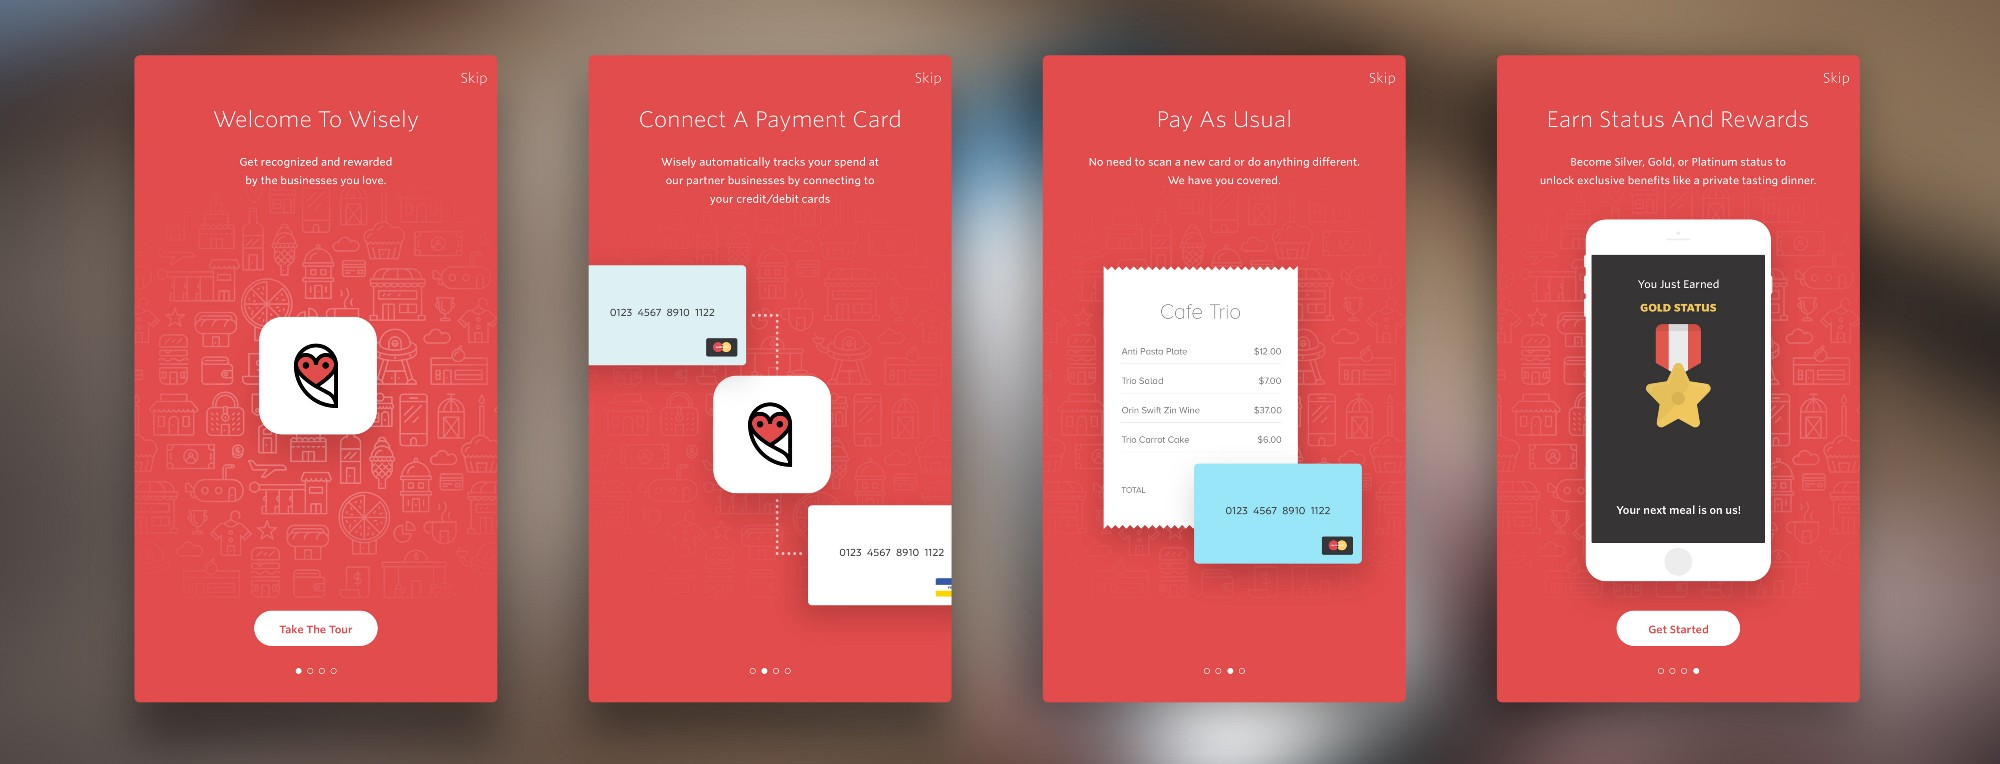 Amazing Onboarding Inspiration For Mobile Apps. Via Muzli Design Inspiration Home Design Ideas